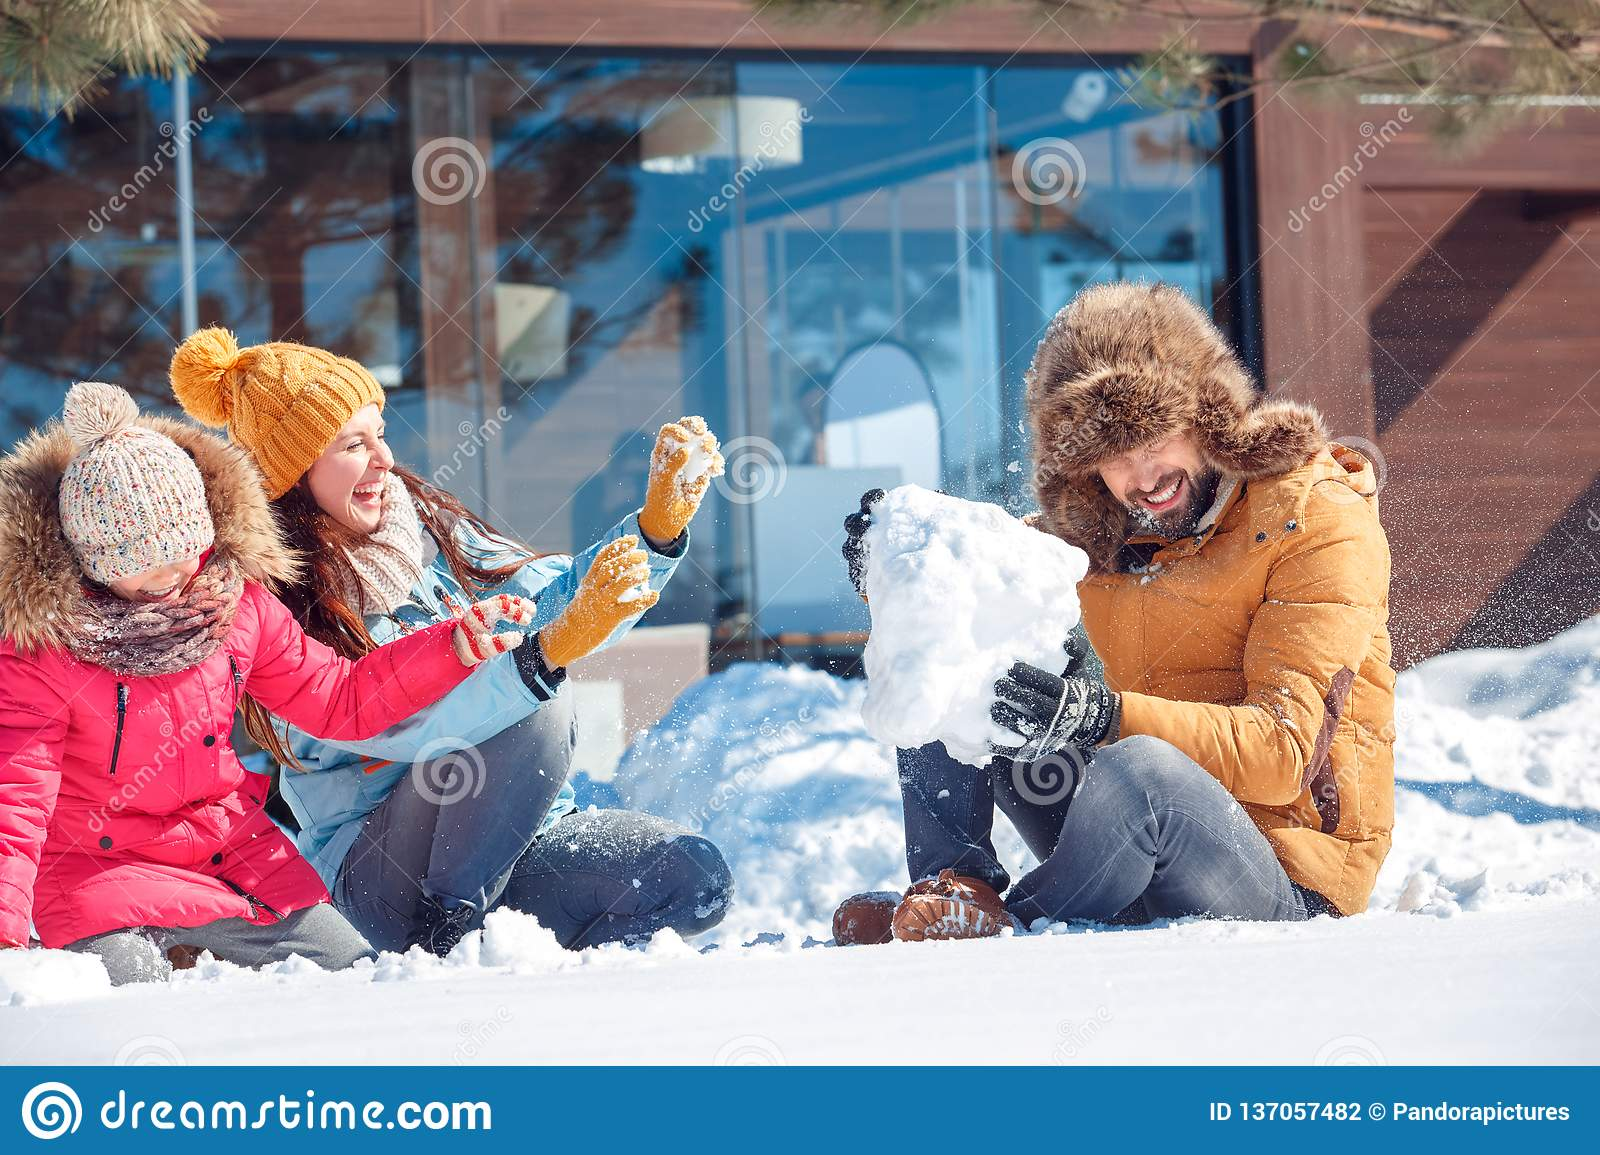 Winter vacation. Family time together outdoors sitting playing with snow laughing cheerful